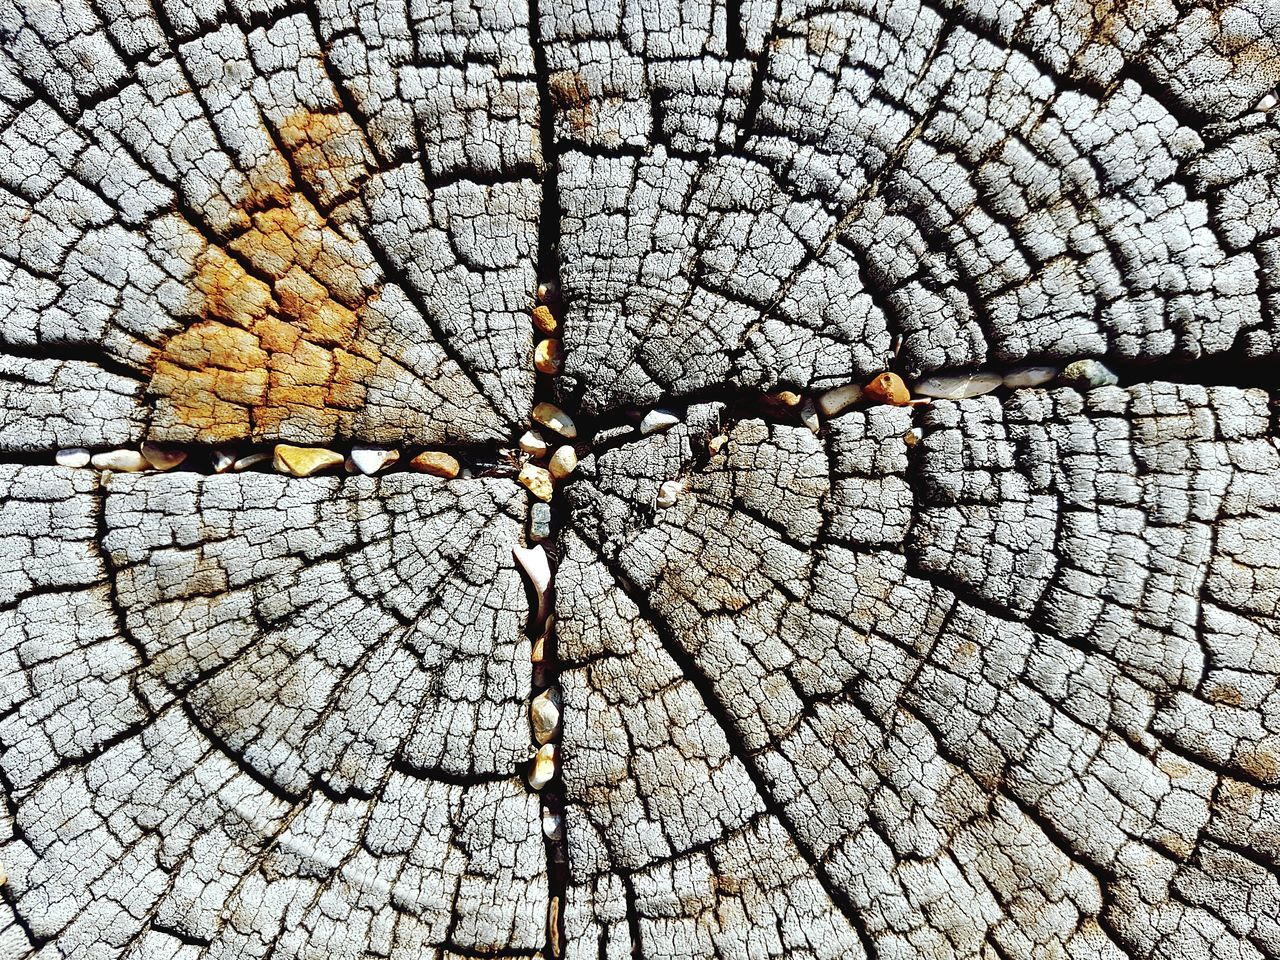 Backgrounds Full Frame Cracked Tree Ring Outdoors No People Textured  Wood - Material Nature Tree Day Close-up Tree Stump Concentric